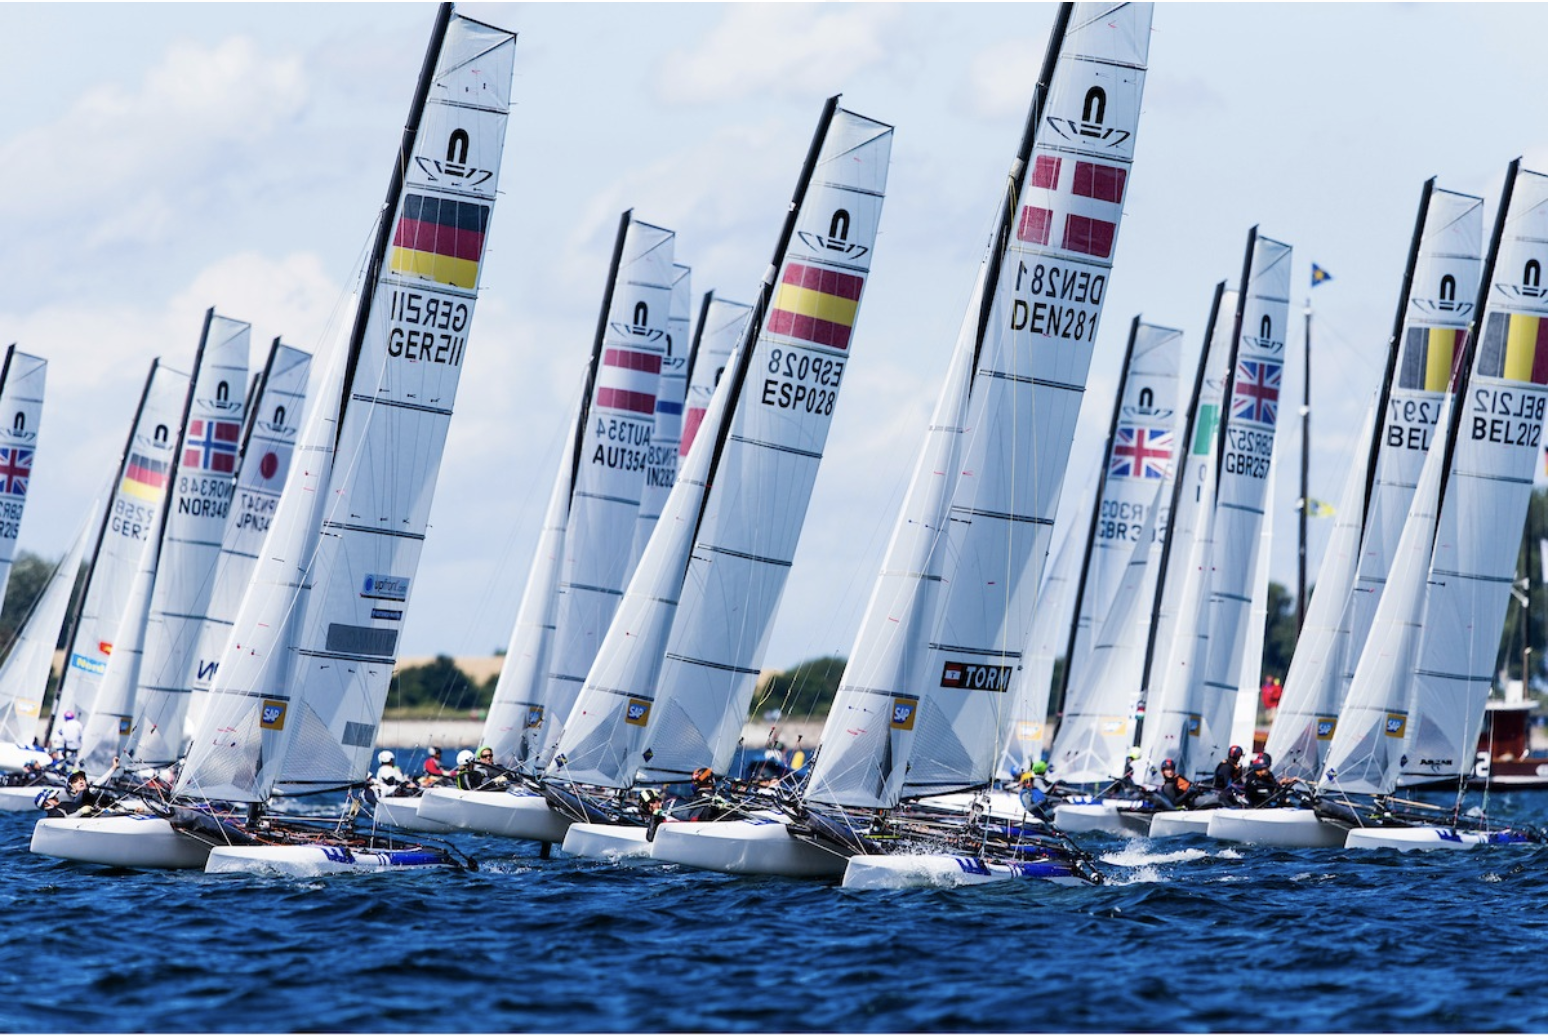 ICARUS SPORTS AND 49ER OLYMPIC SAILING TEAM UP FOR EUROPEAN CHAMPIONSHIP